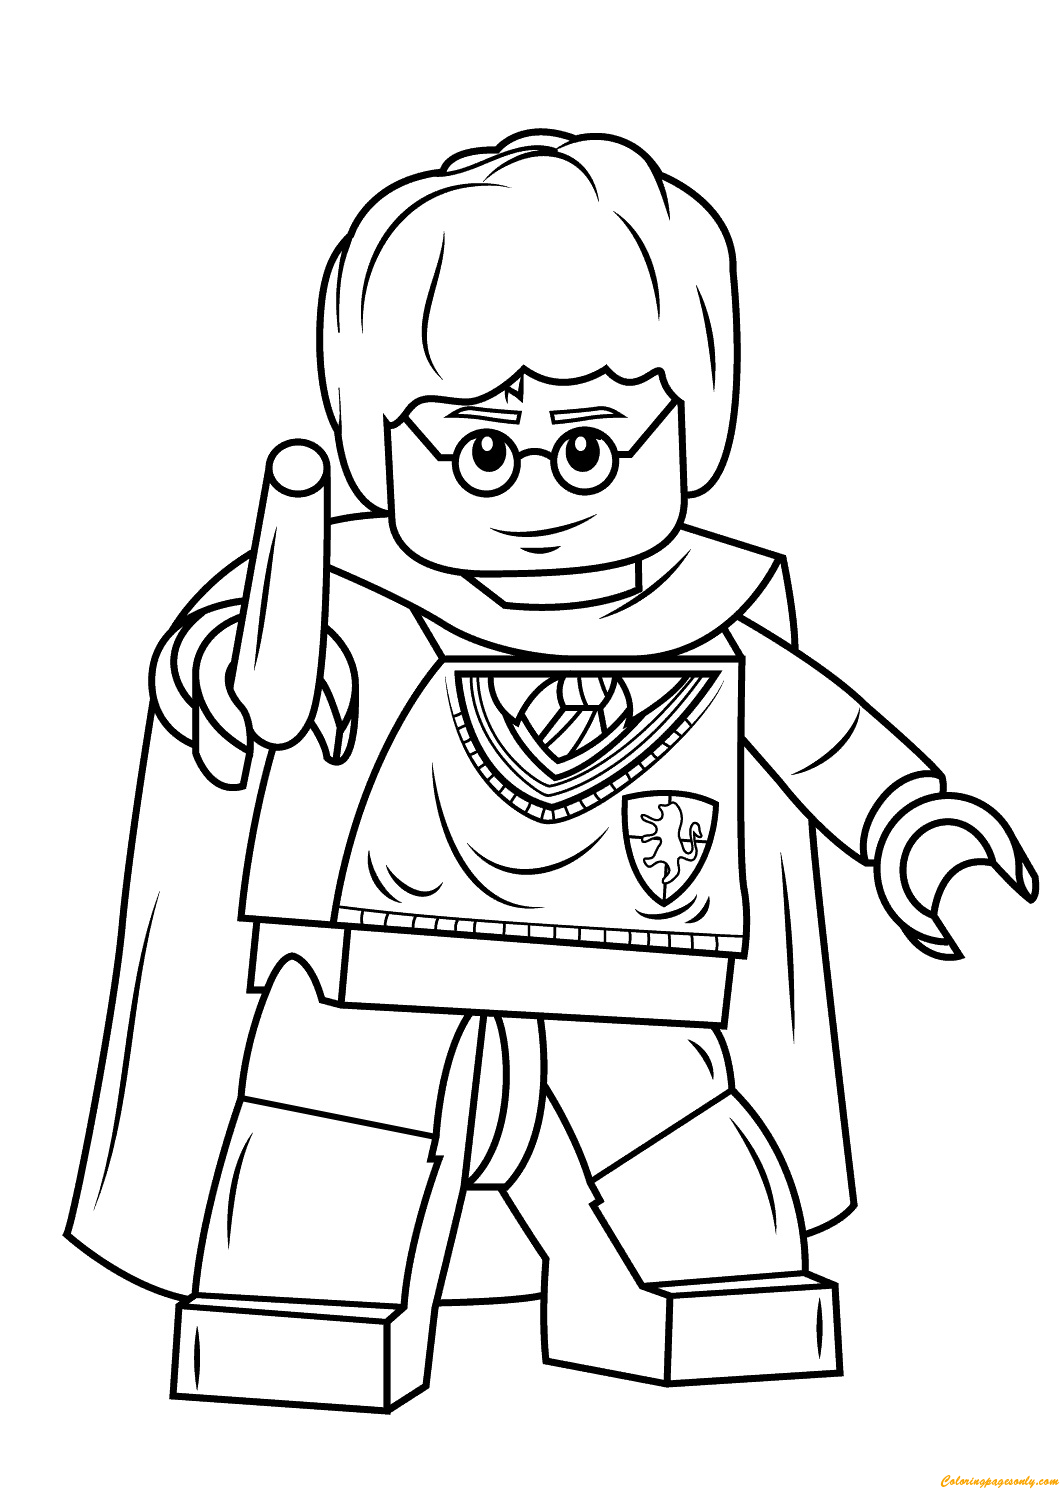 harry potter lego coloring pages lego harry potter coloring pages coloring home harry pages lego potter coloring